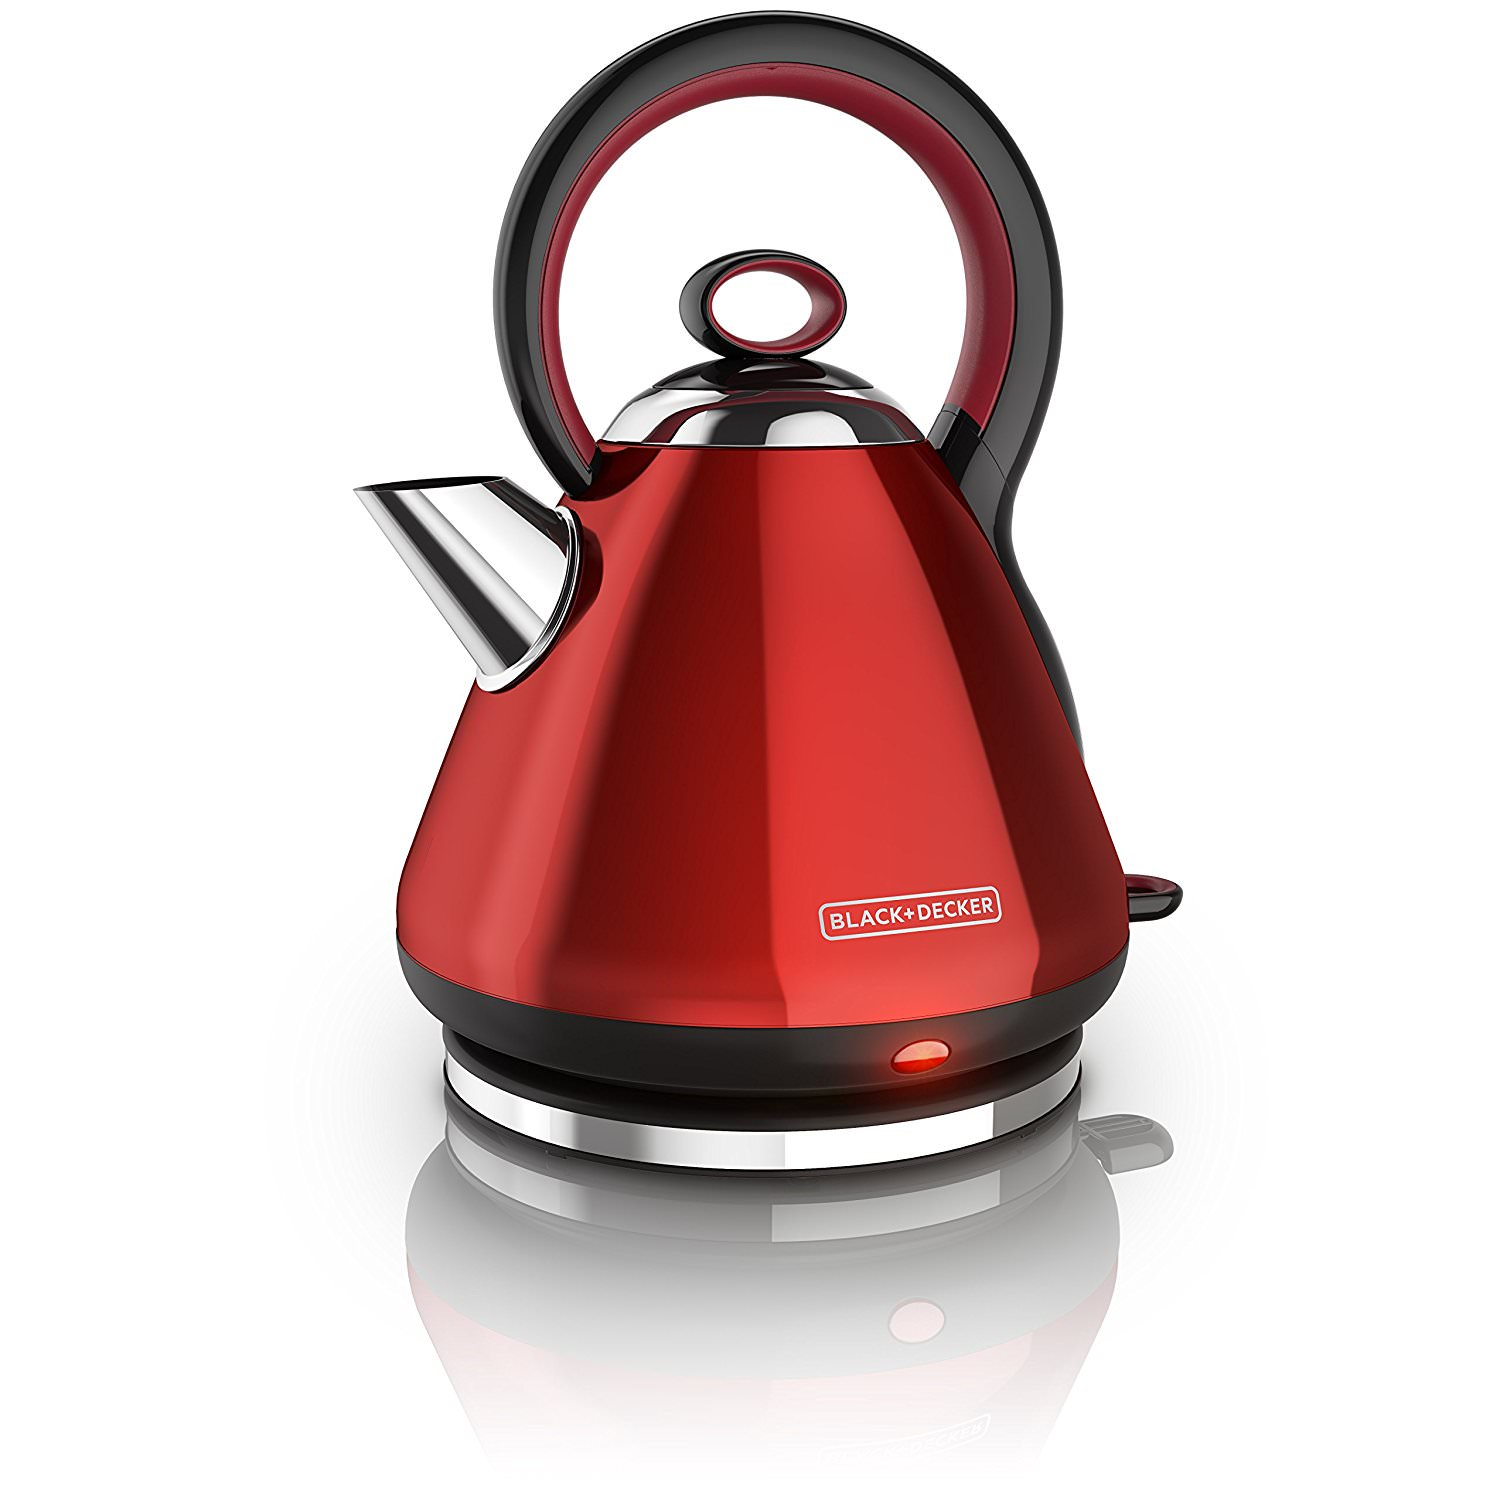 Russell Hobbs 1.8L Stainless Steel Electric Cordless Kettle, KE9000R